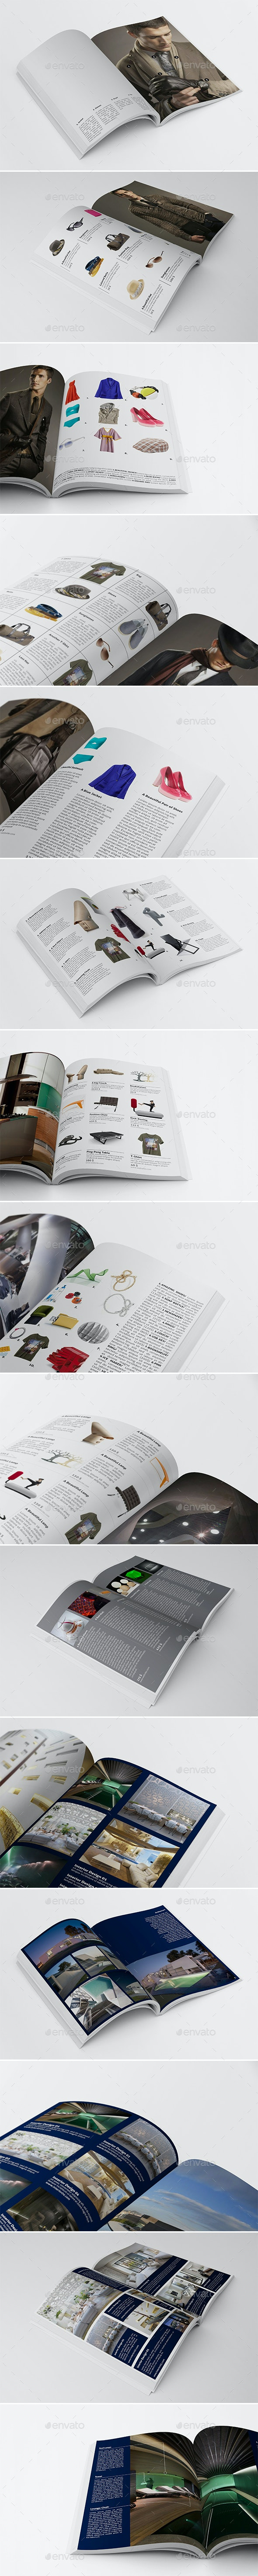 15 Different Products Showcase Layouts Bundle - Magazines Print Templates